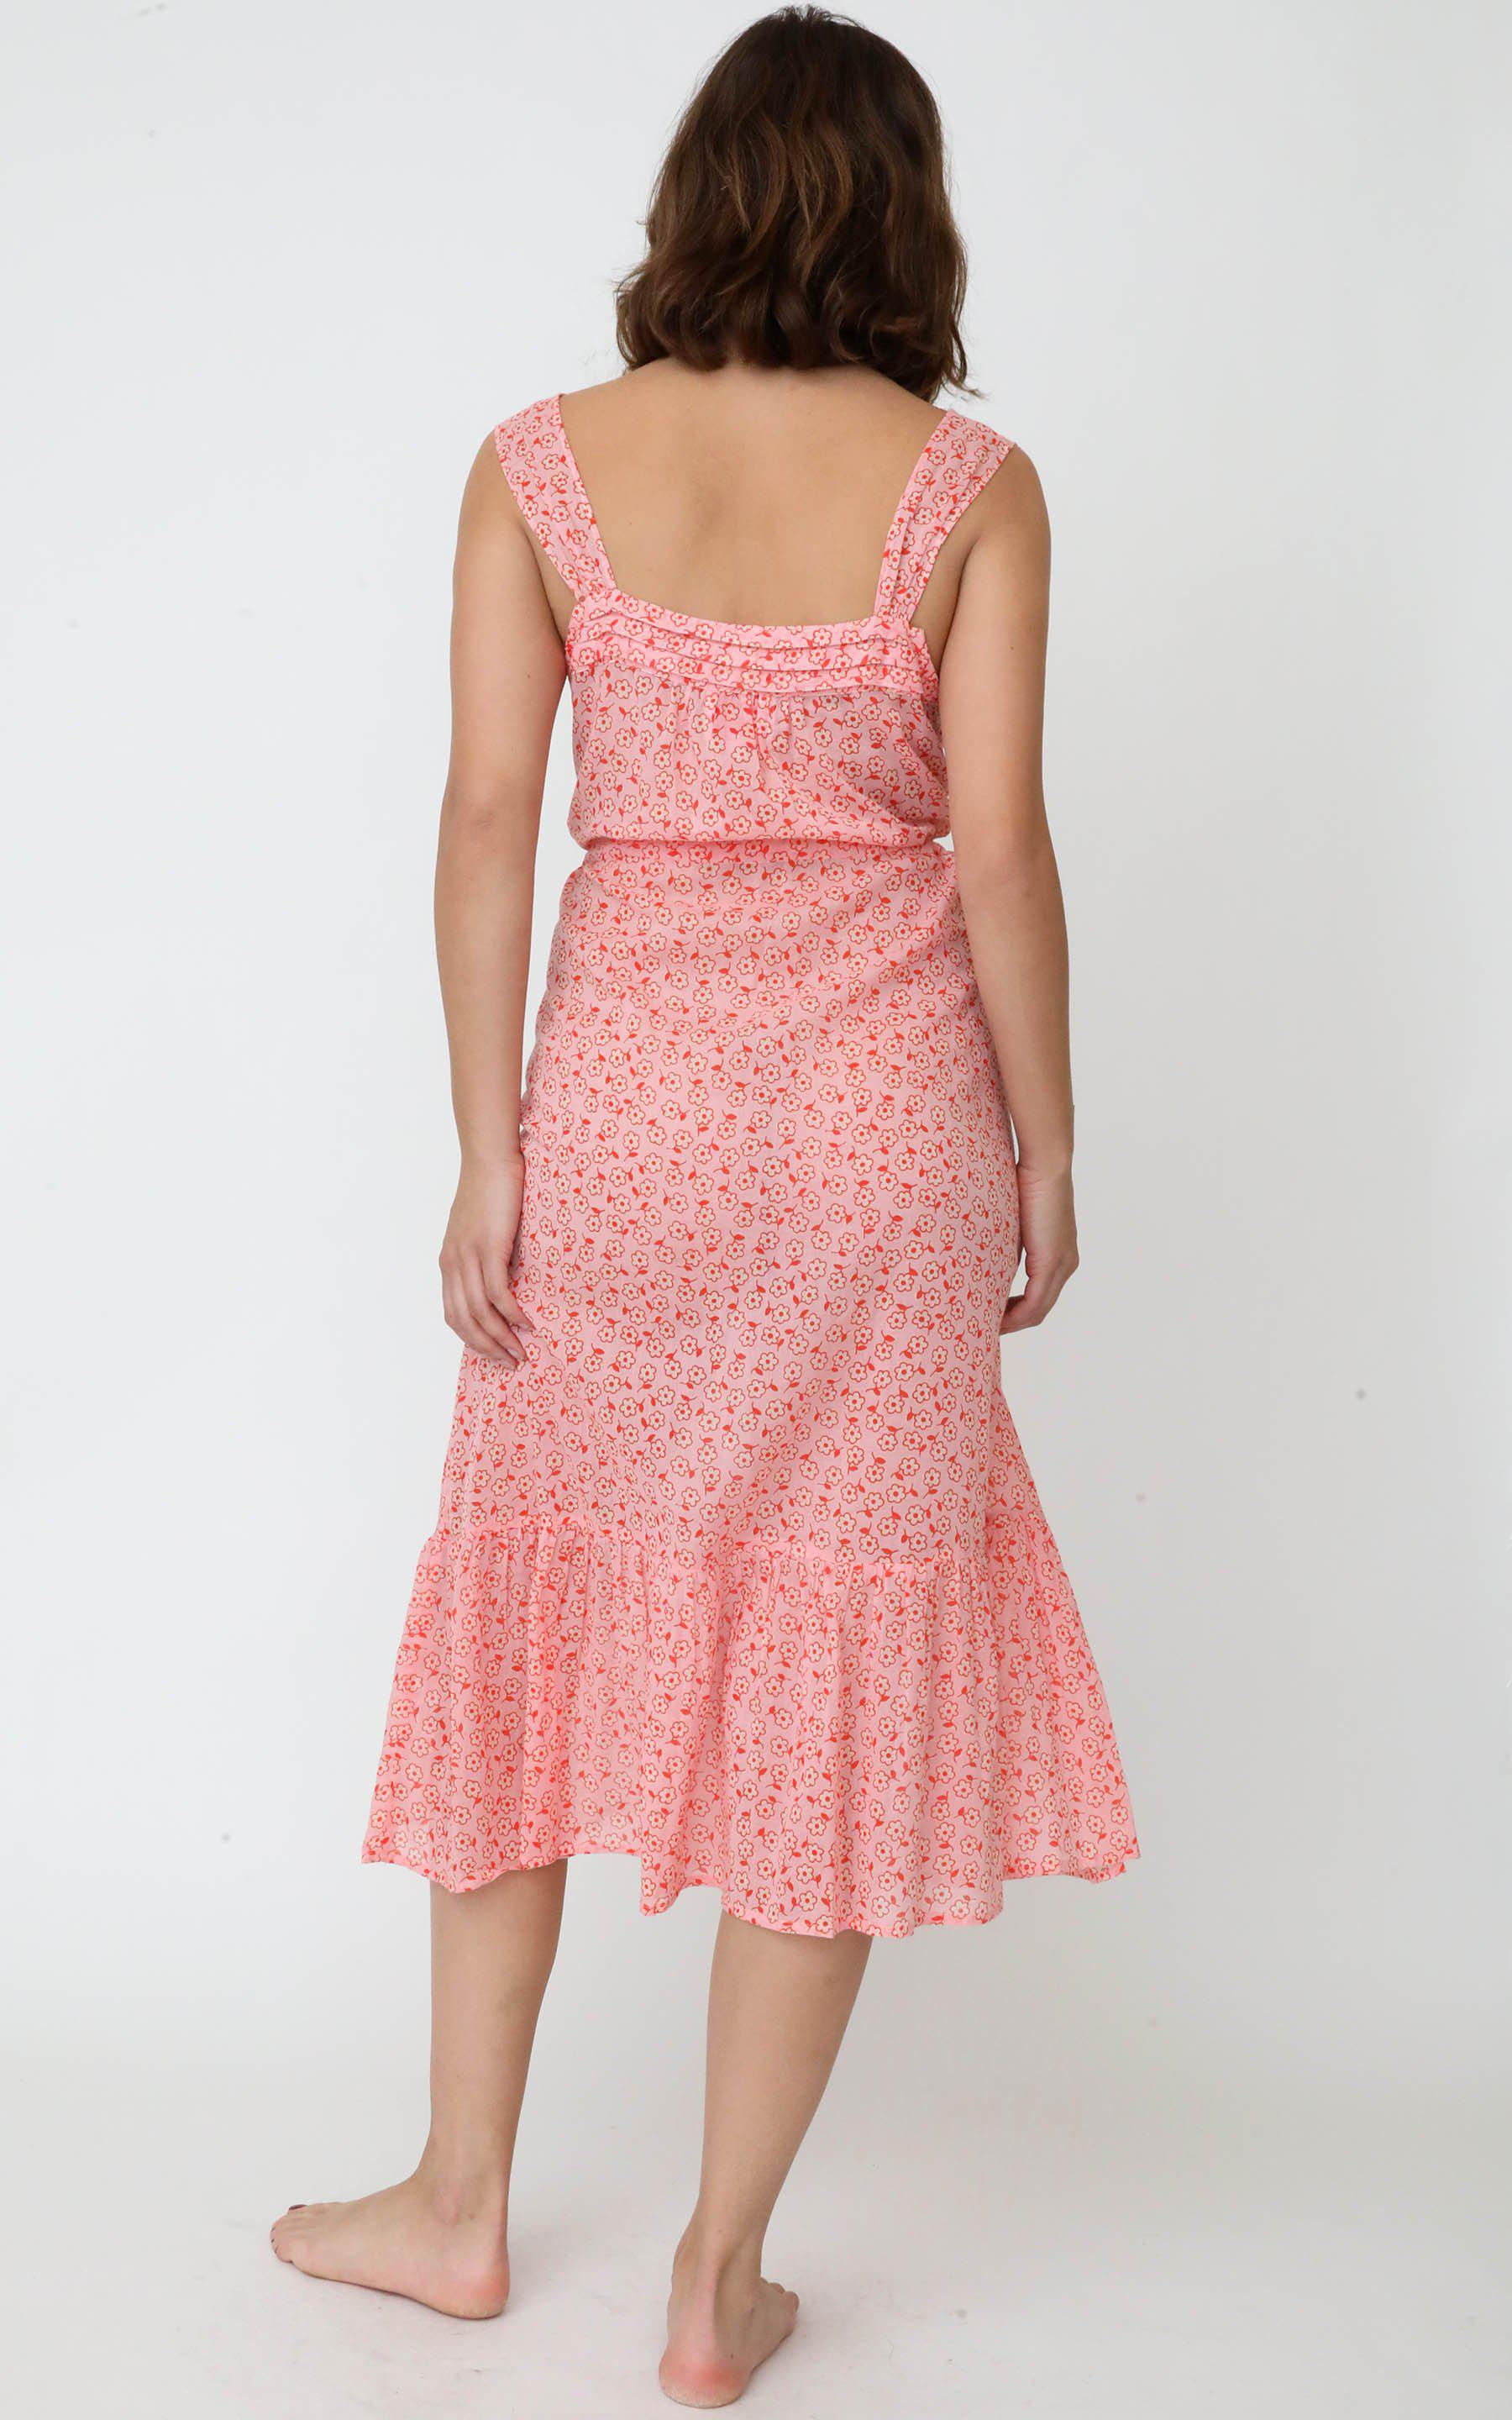 Rosalind Gown Scattered Daisy Orchid Pink 1